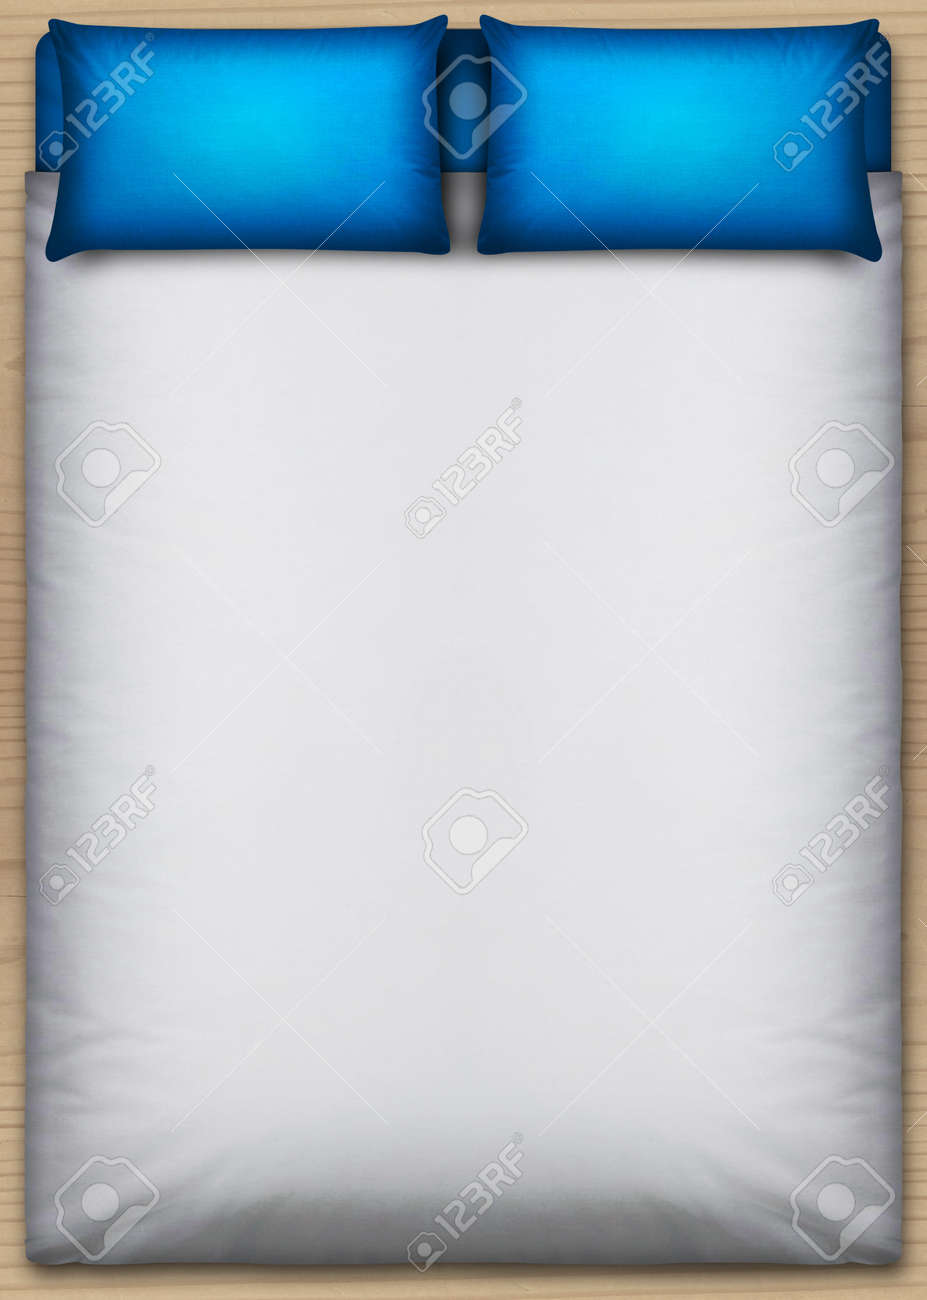 A direct top view from above a perfectly neat bed with a white duvet and two blue pillows on a wooden floor Stock Photo - 21639110